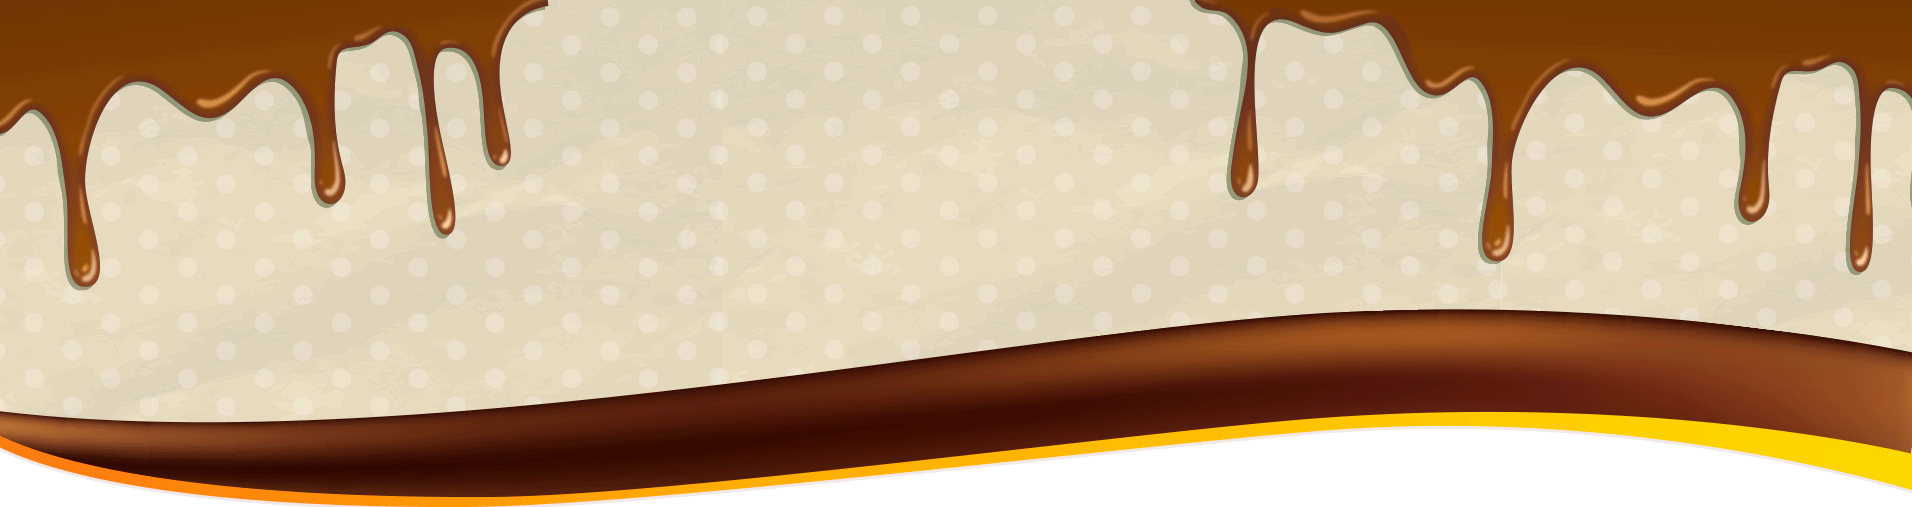 banner-chocolate